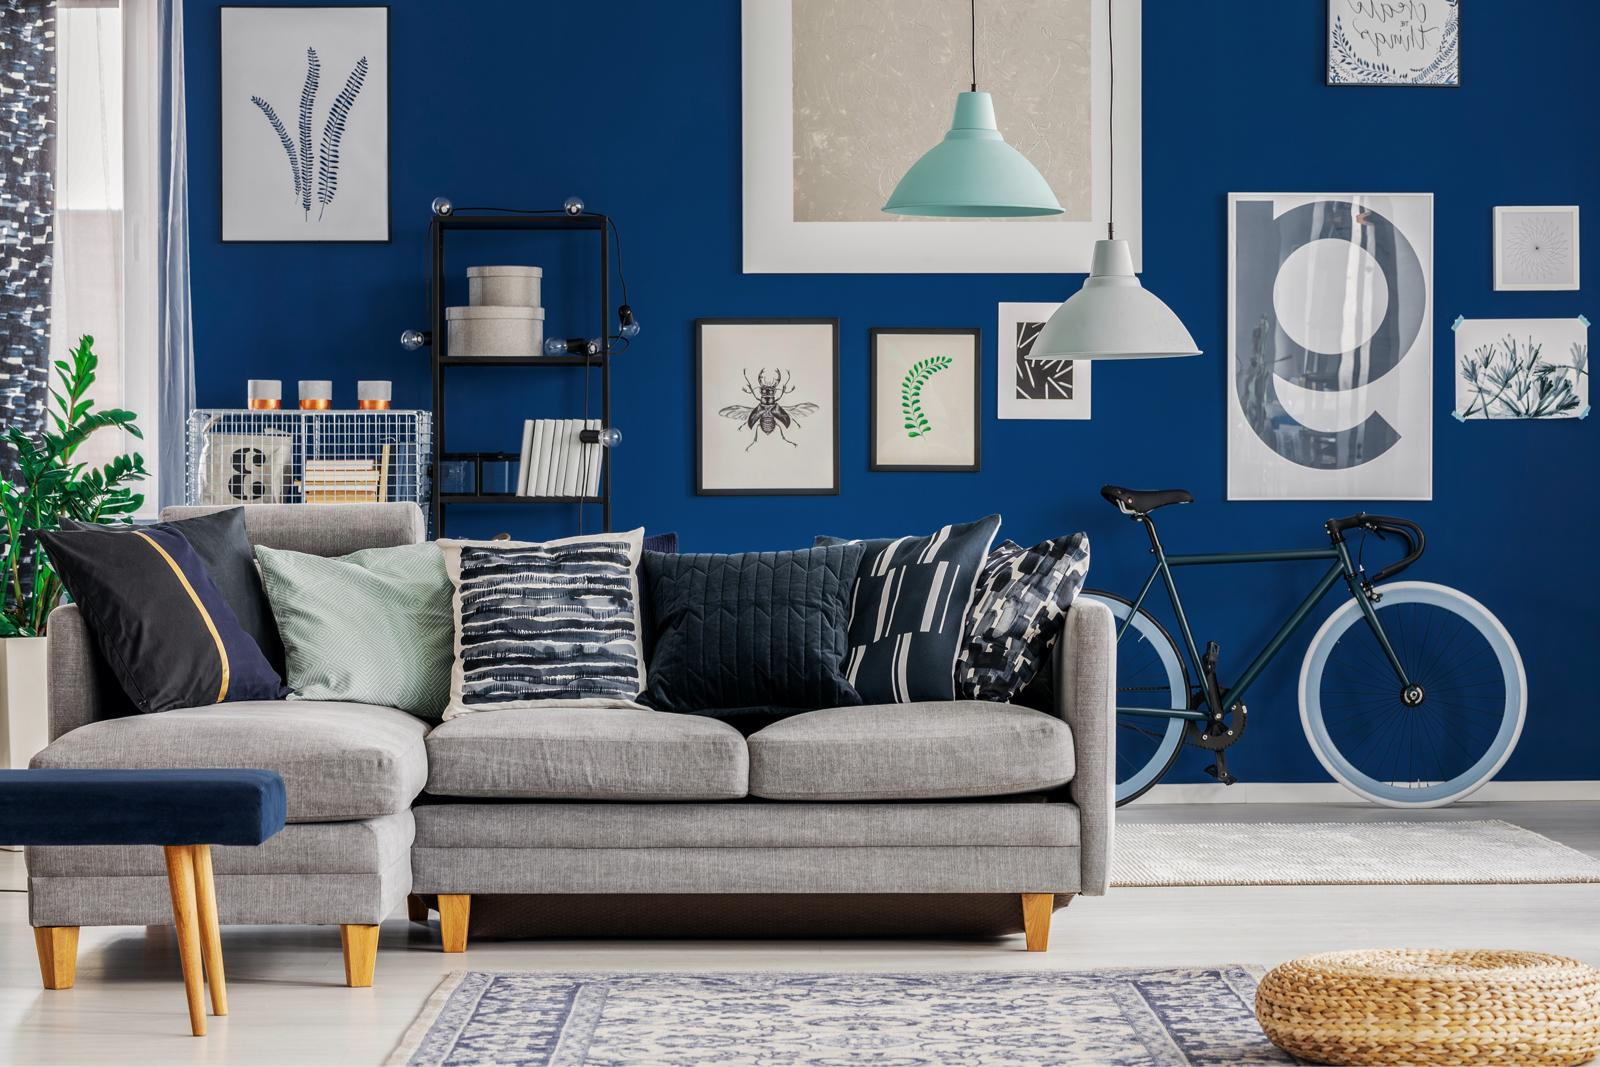 Maximalism Style And Why We Love It 11, Paneling Factory Of Virginia